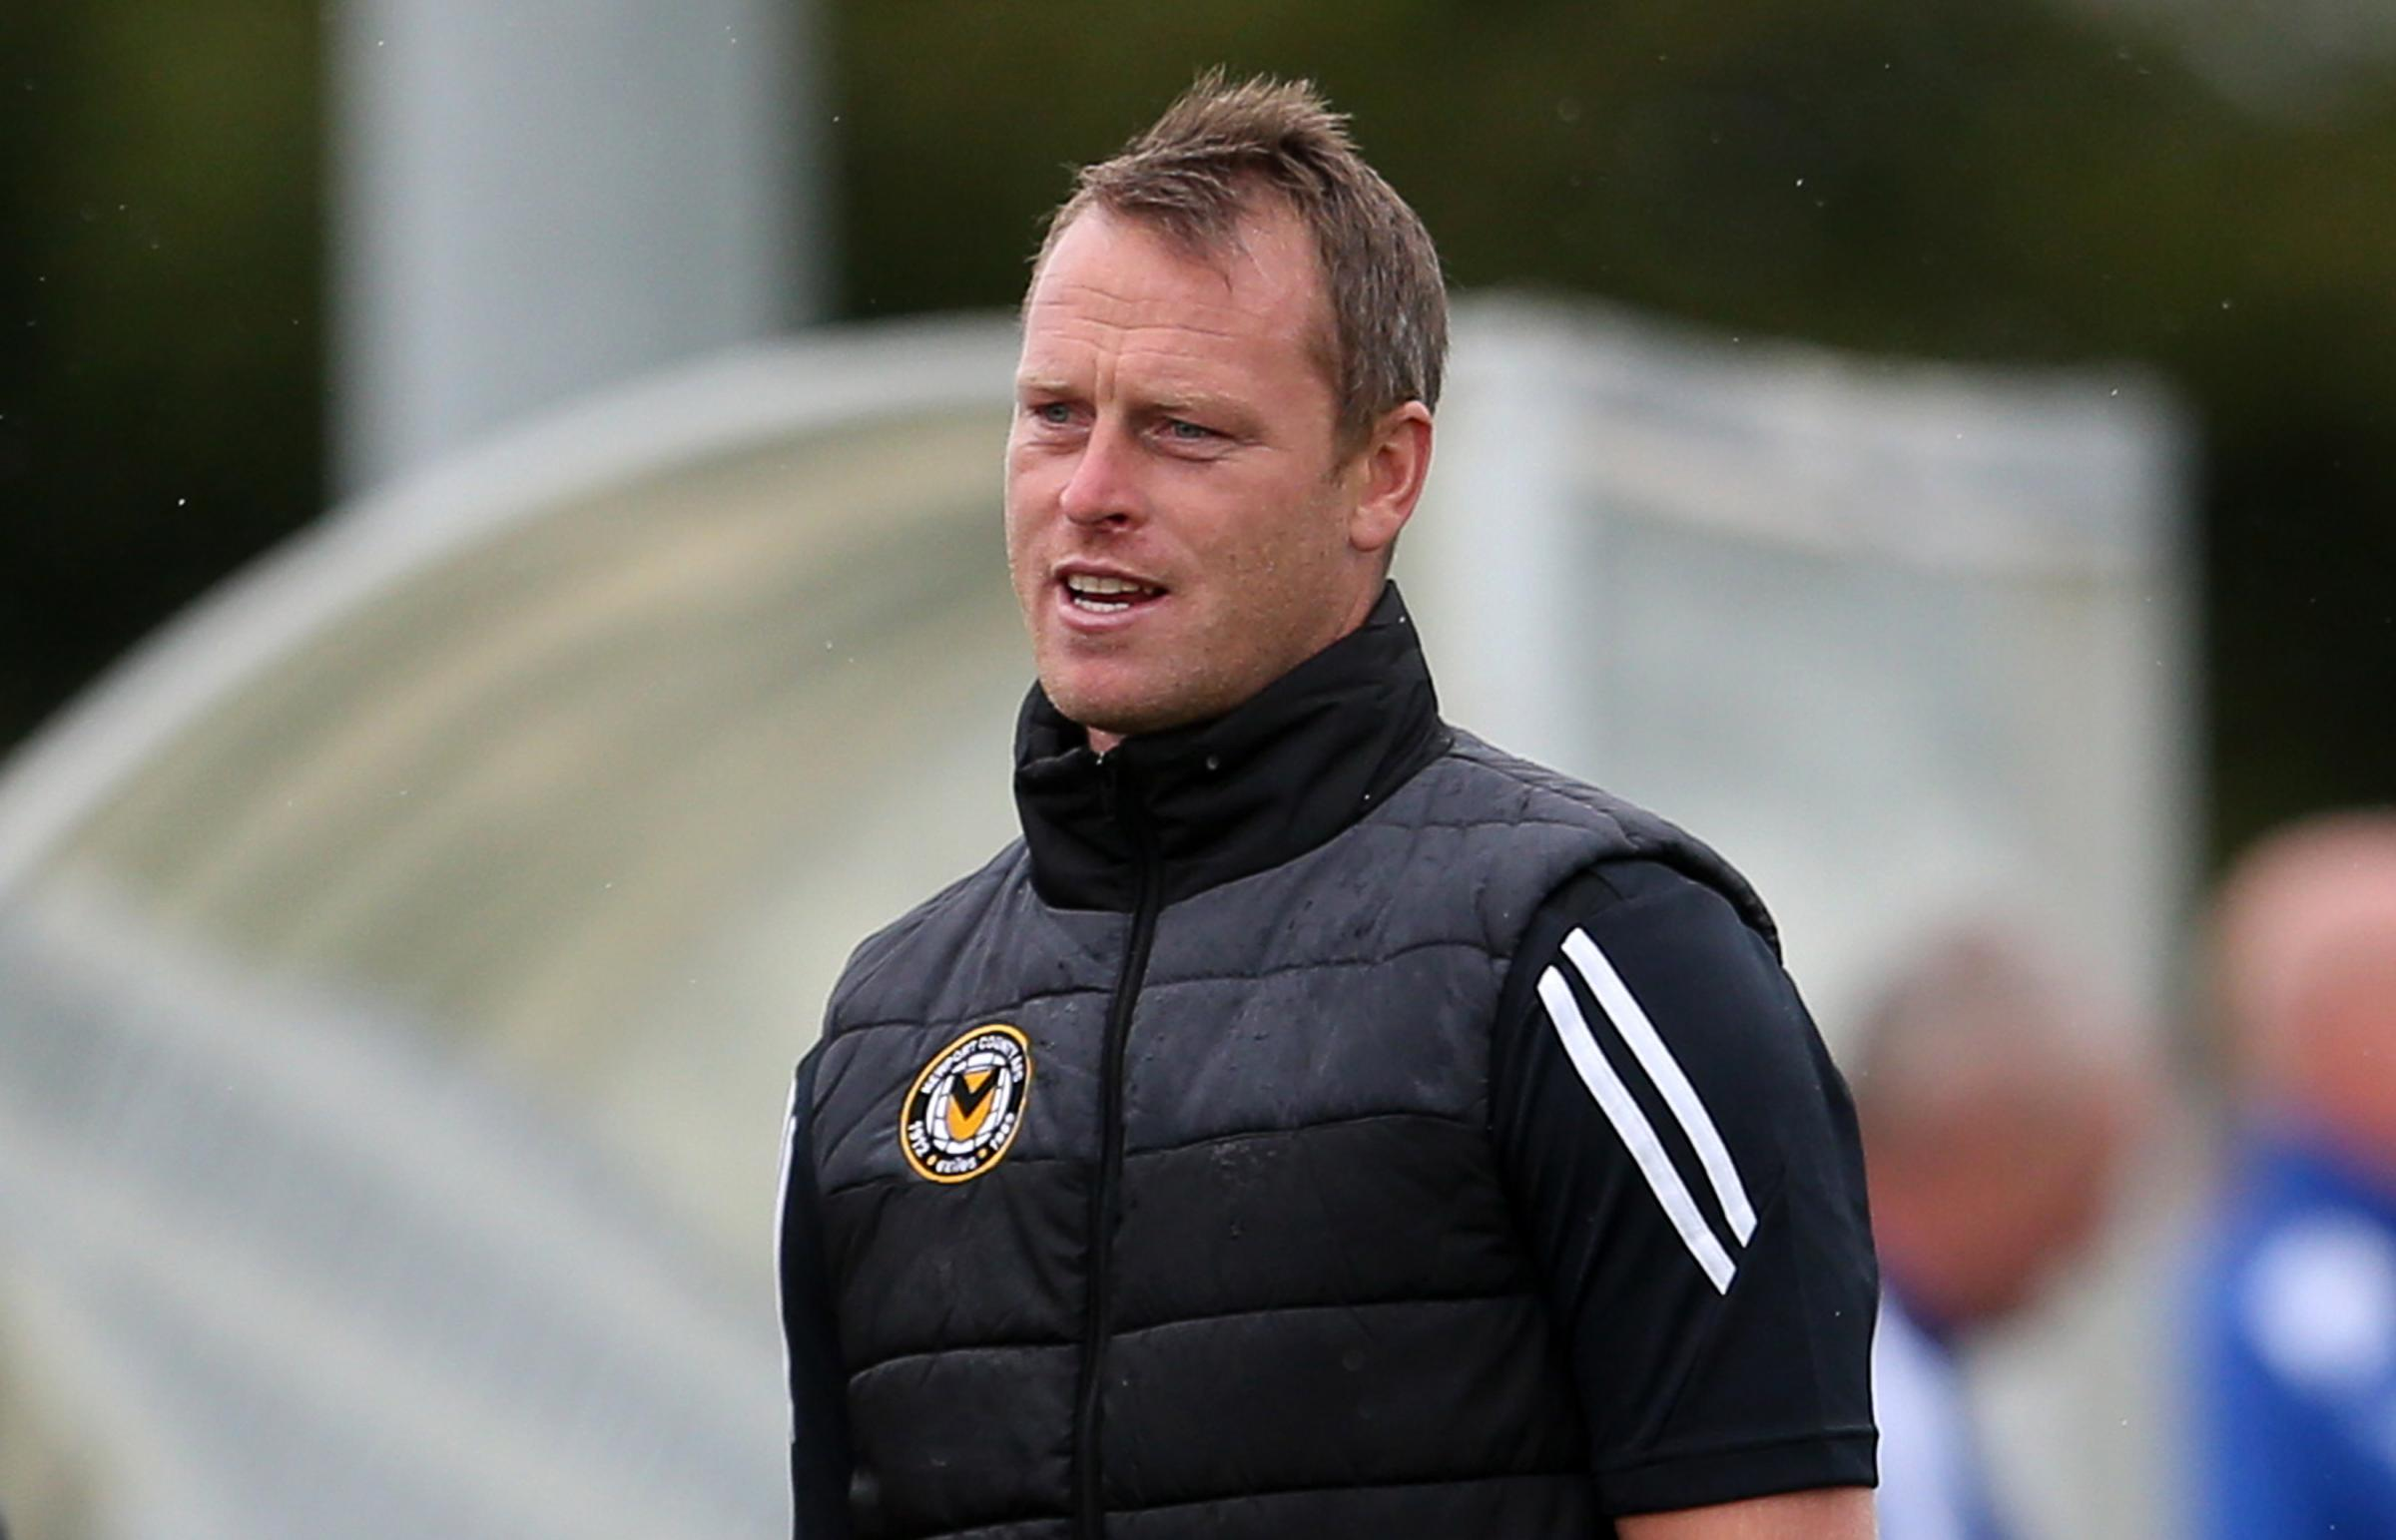 PLANS: Newport County manager Michael Flynn